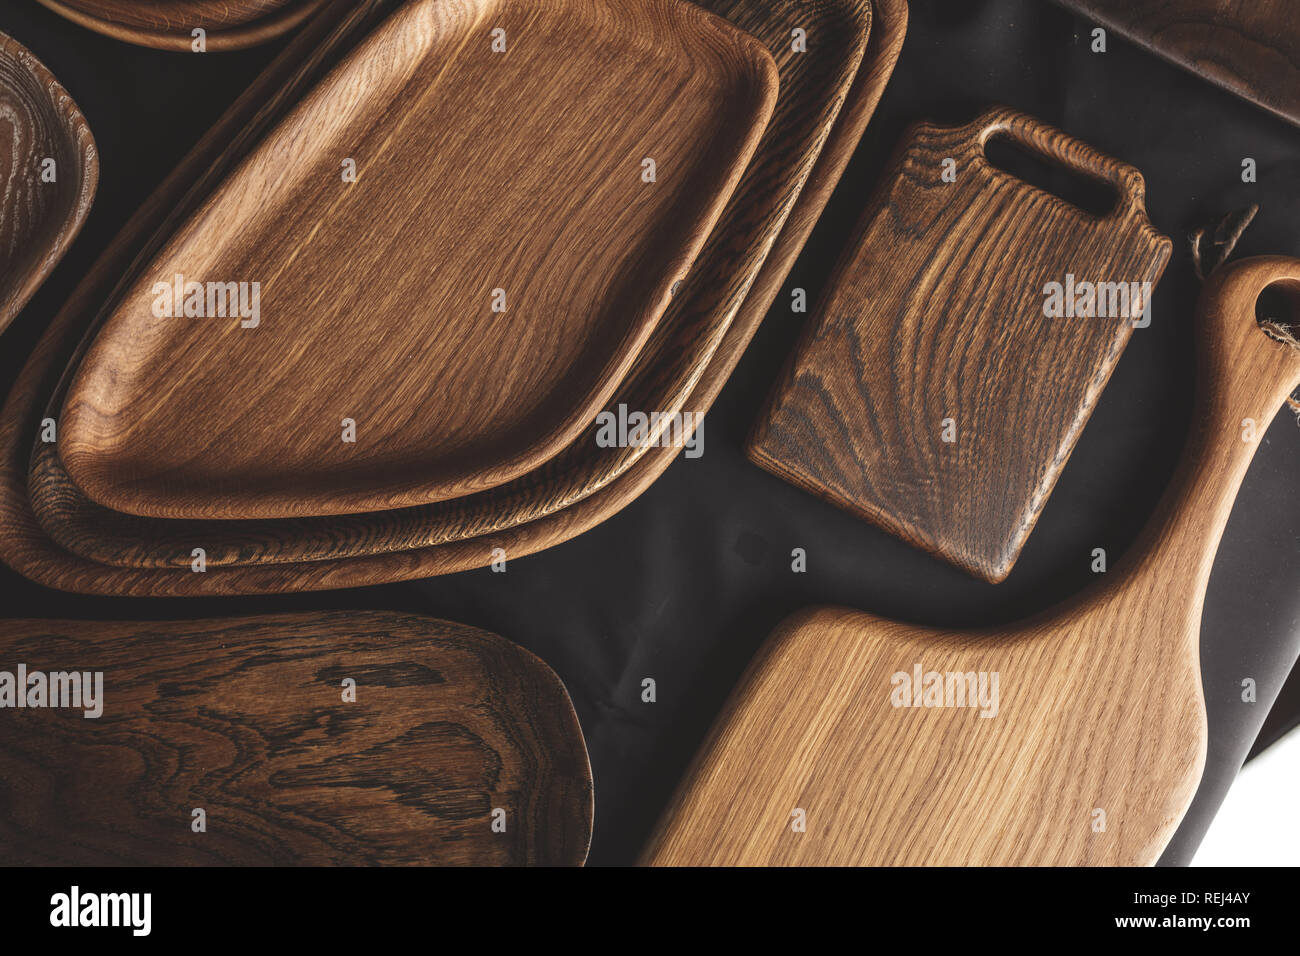 Set of cutting boards on wooden background Stock Photo